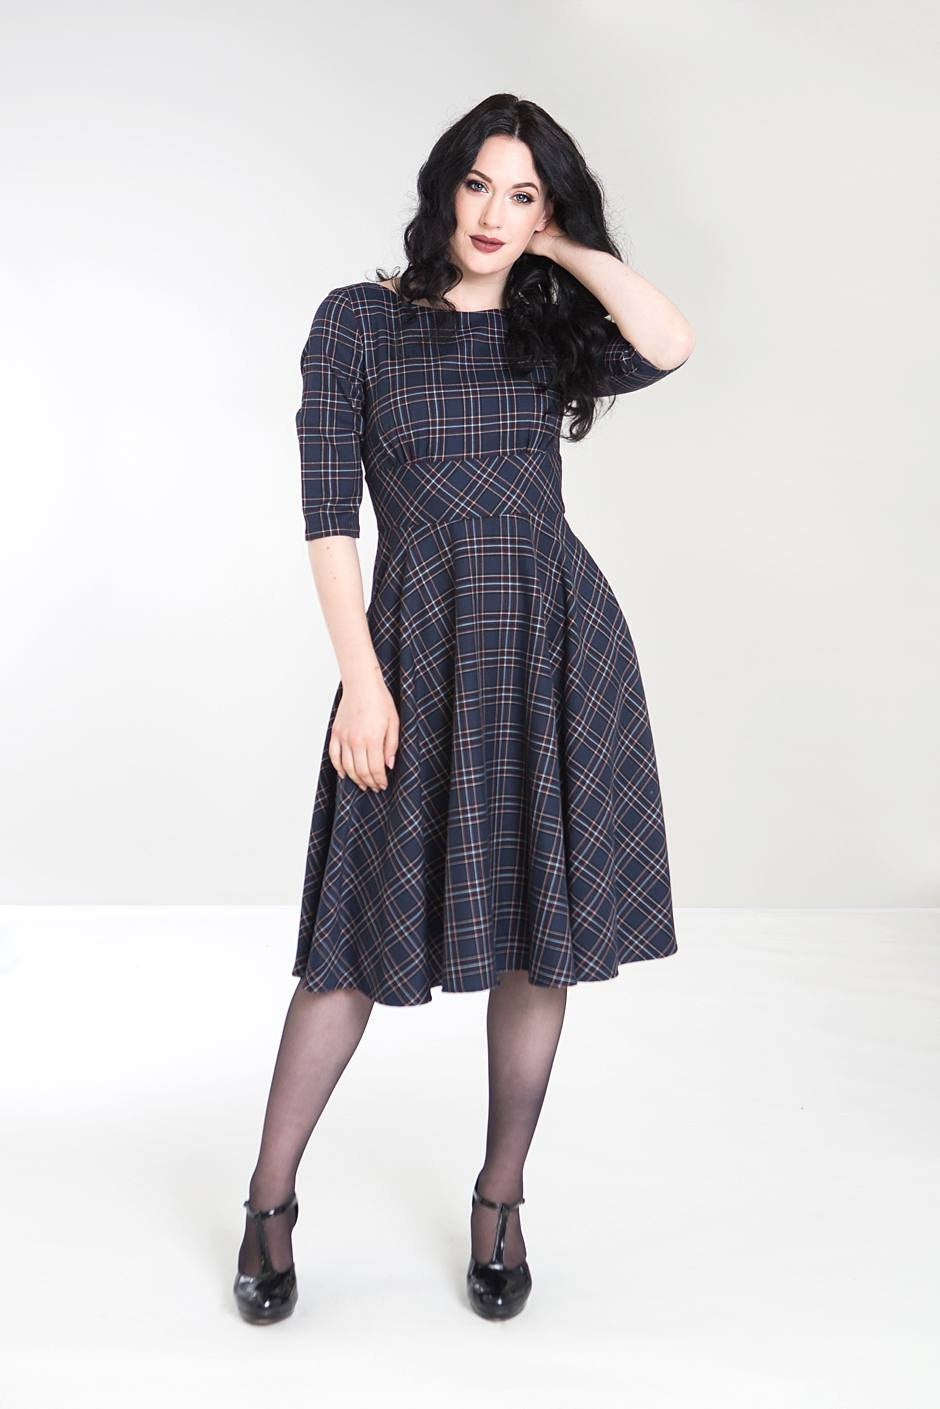 Peebles Tartan Dress - Navy